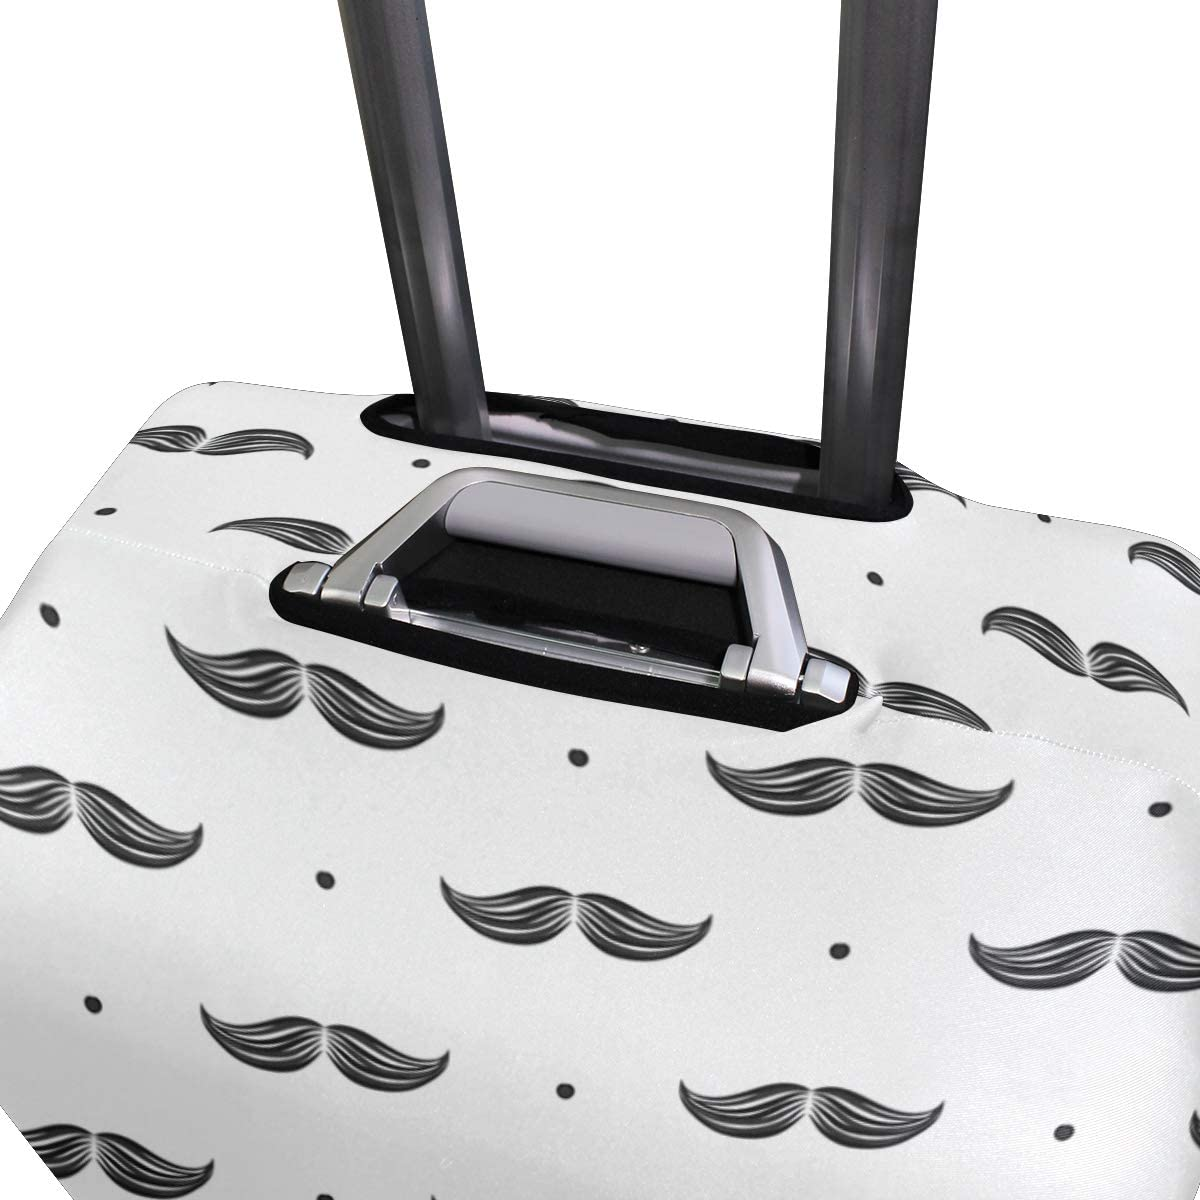 Cute Moustache Pattern Print Luggage Protector Travel Luggage Cover Trolley Case Protective Cover Fits 18-32 Inch